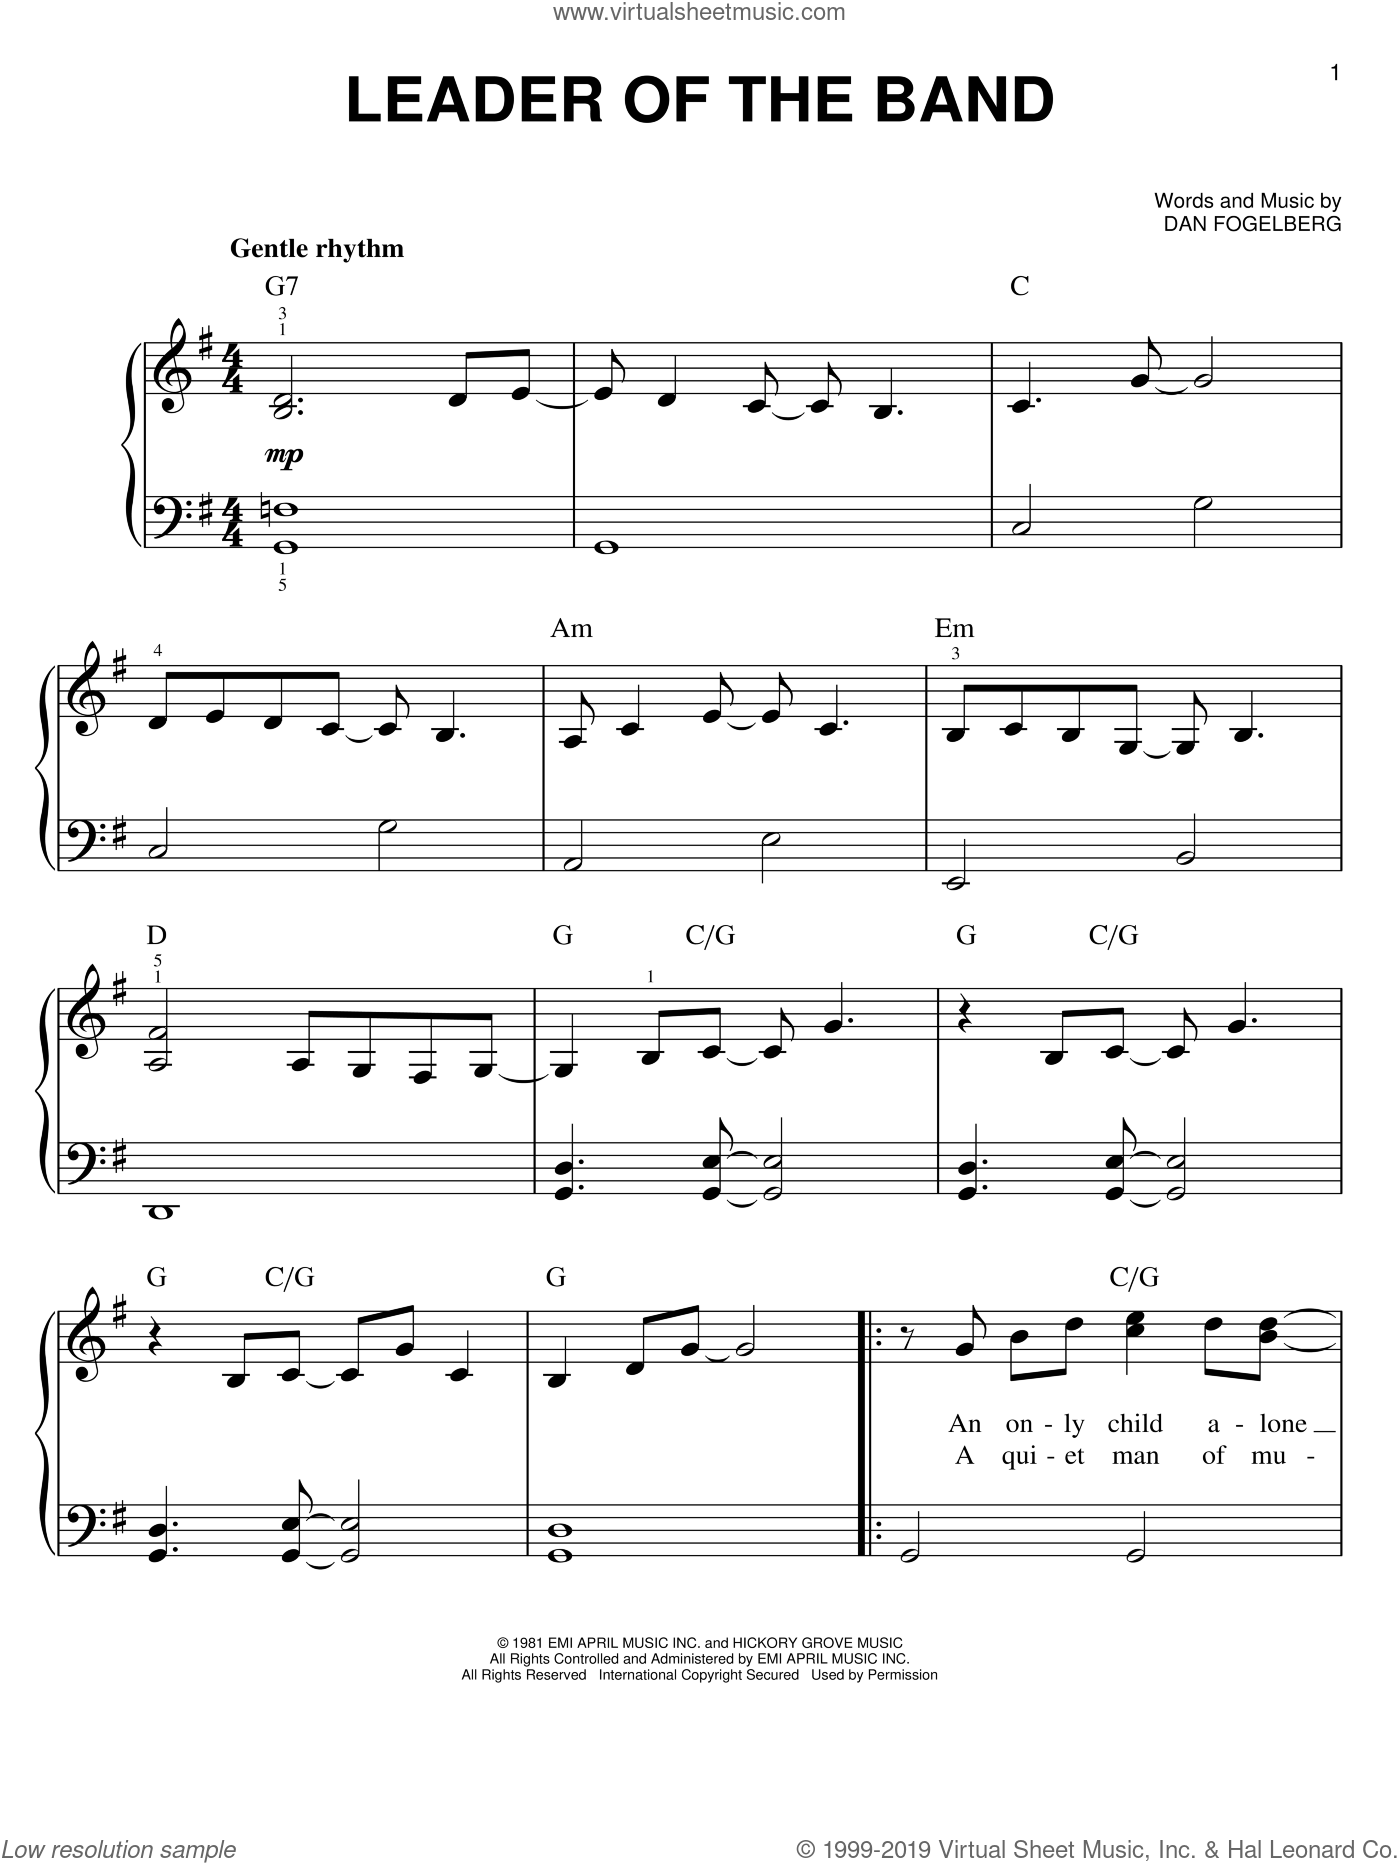 Leader Of The Band sheet music for piano solo by Dan Fogelberg. Score Image Preview.